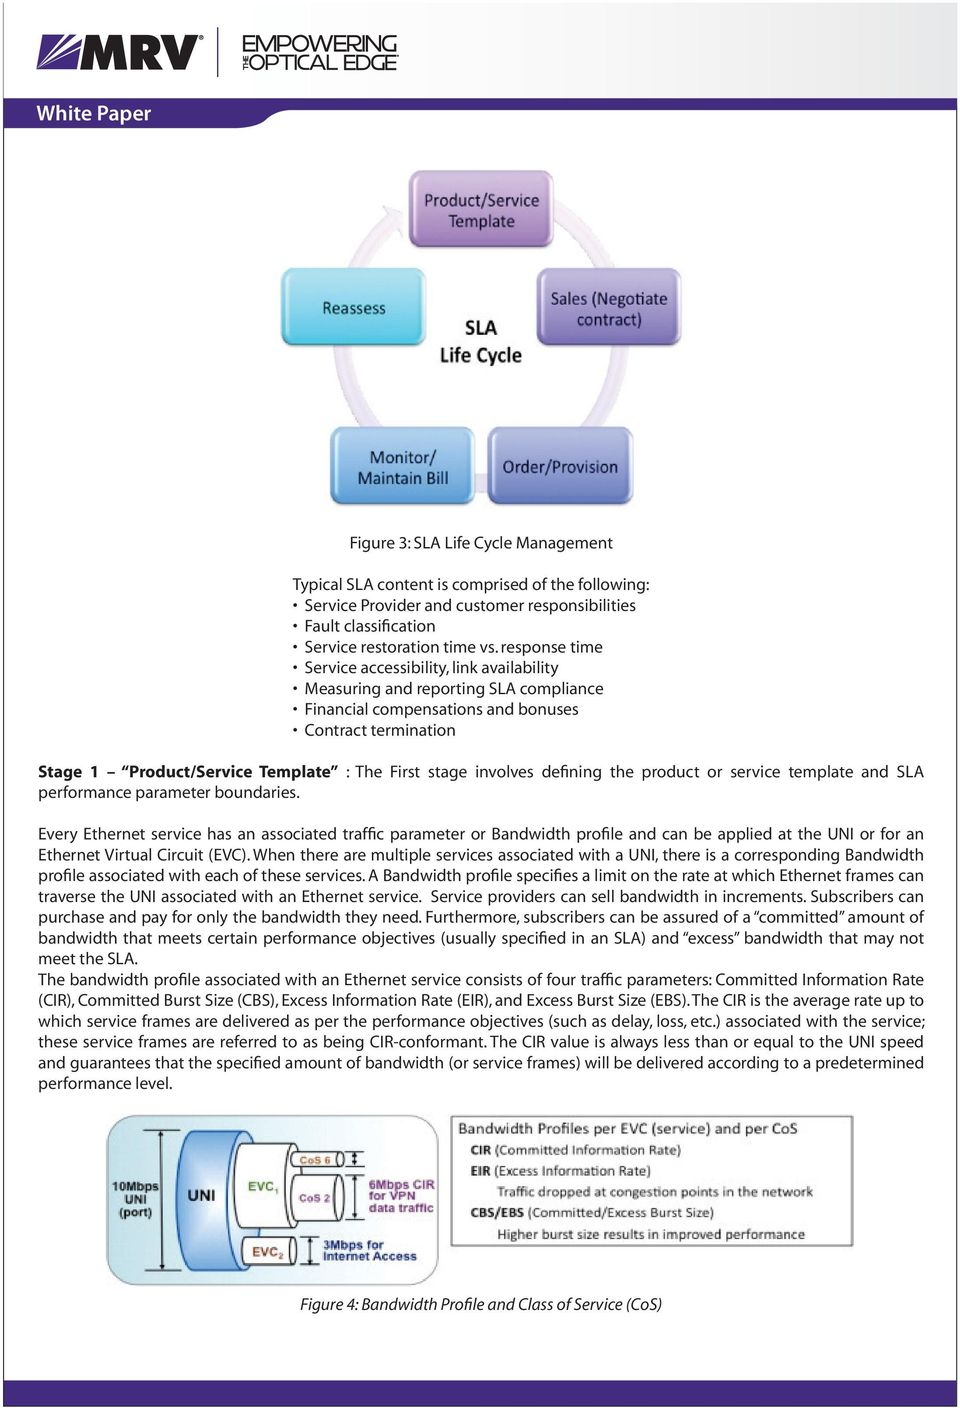 stage involves defining the product or service template and SLA performance parameter boundaries.